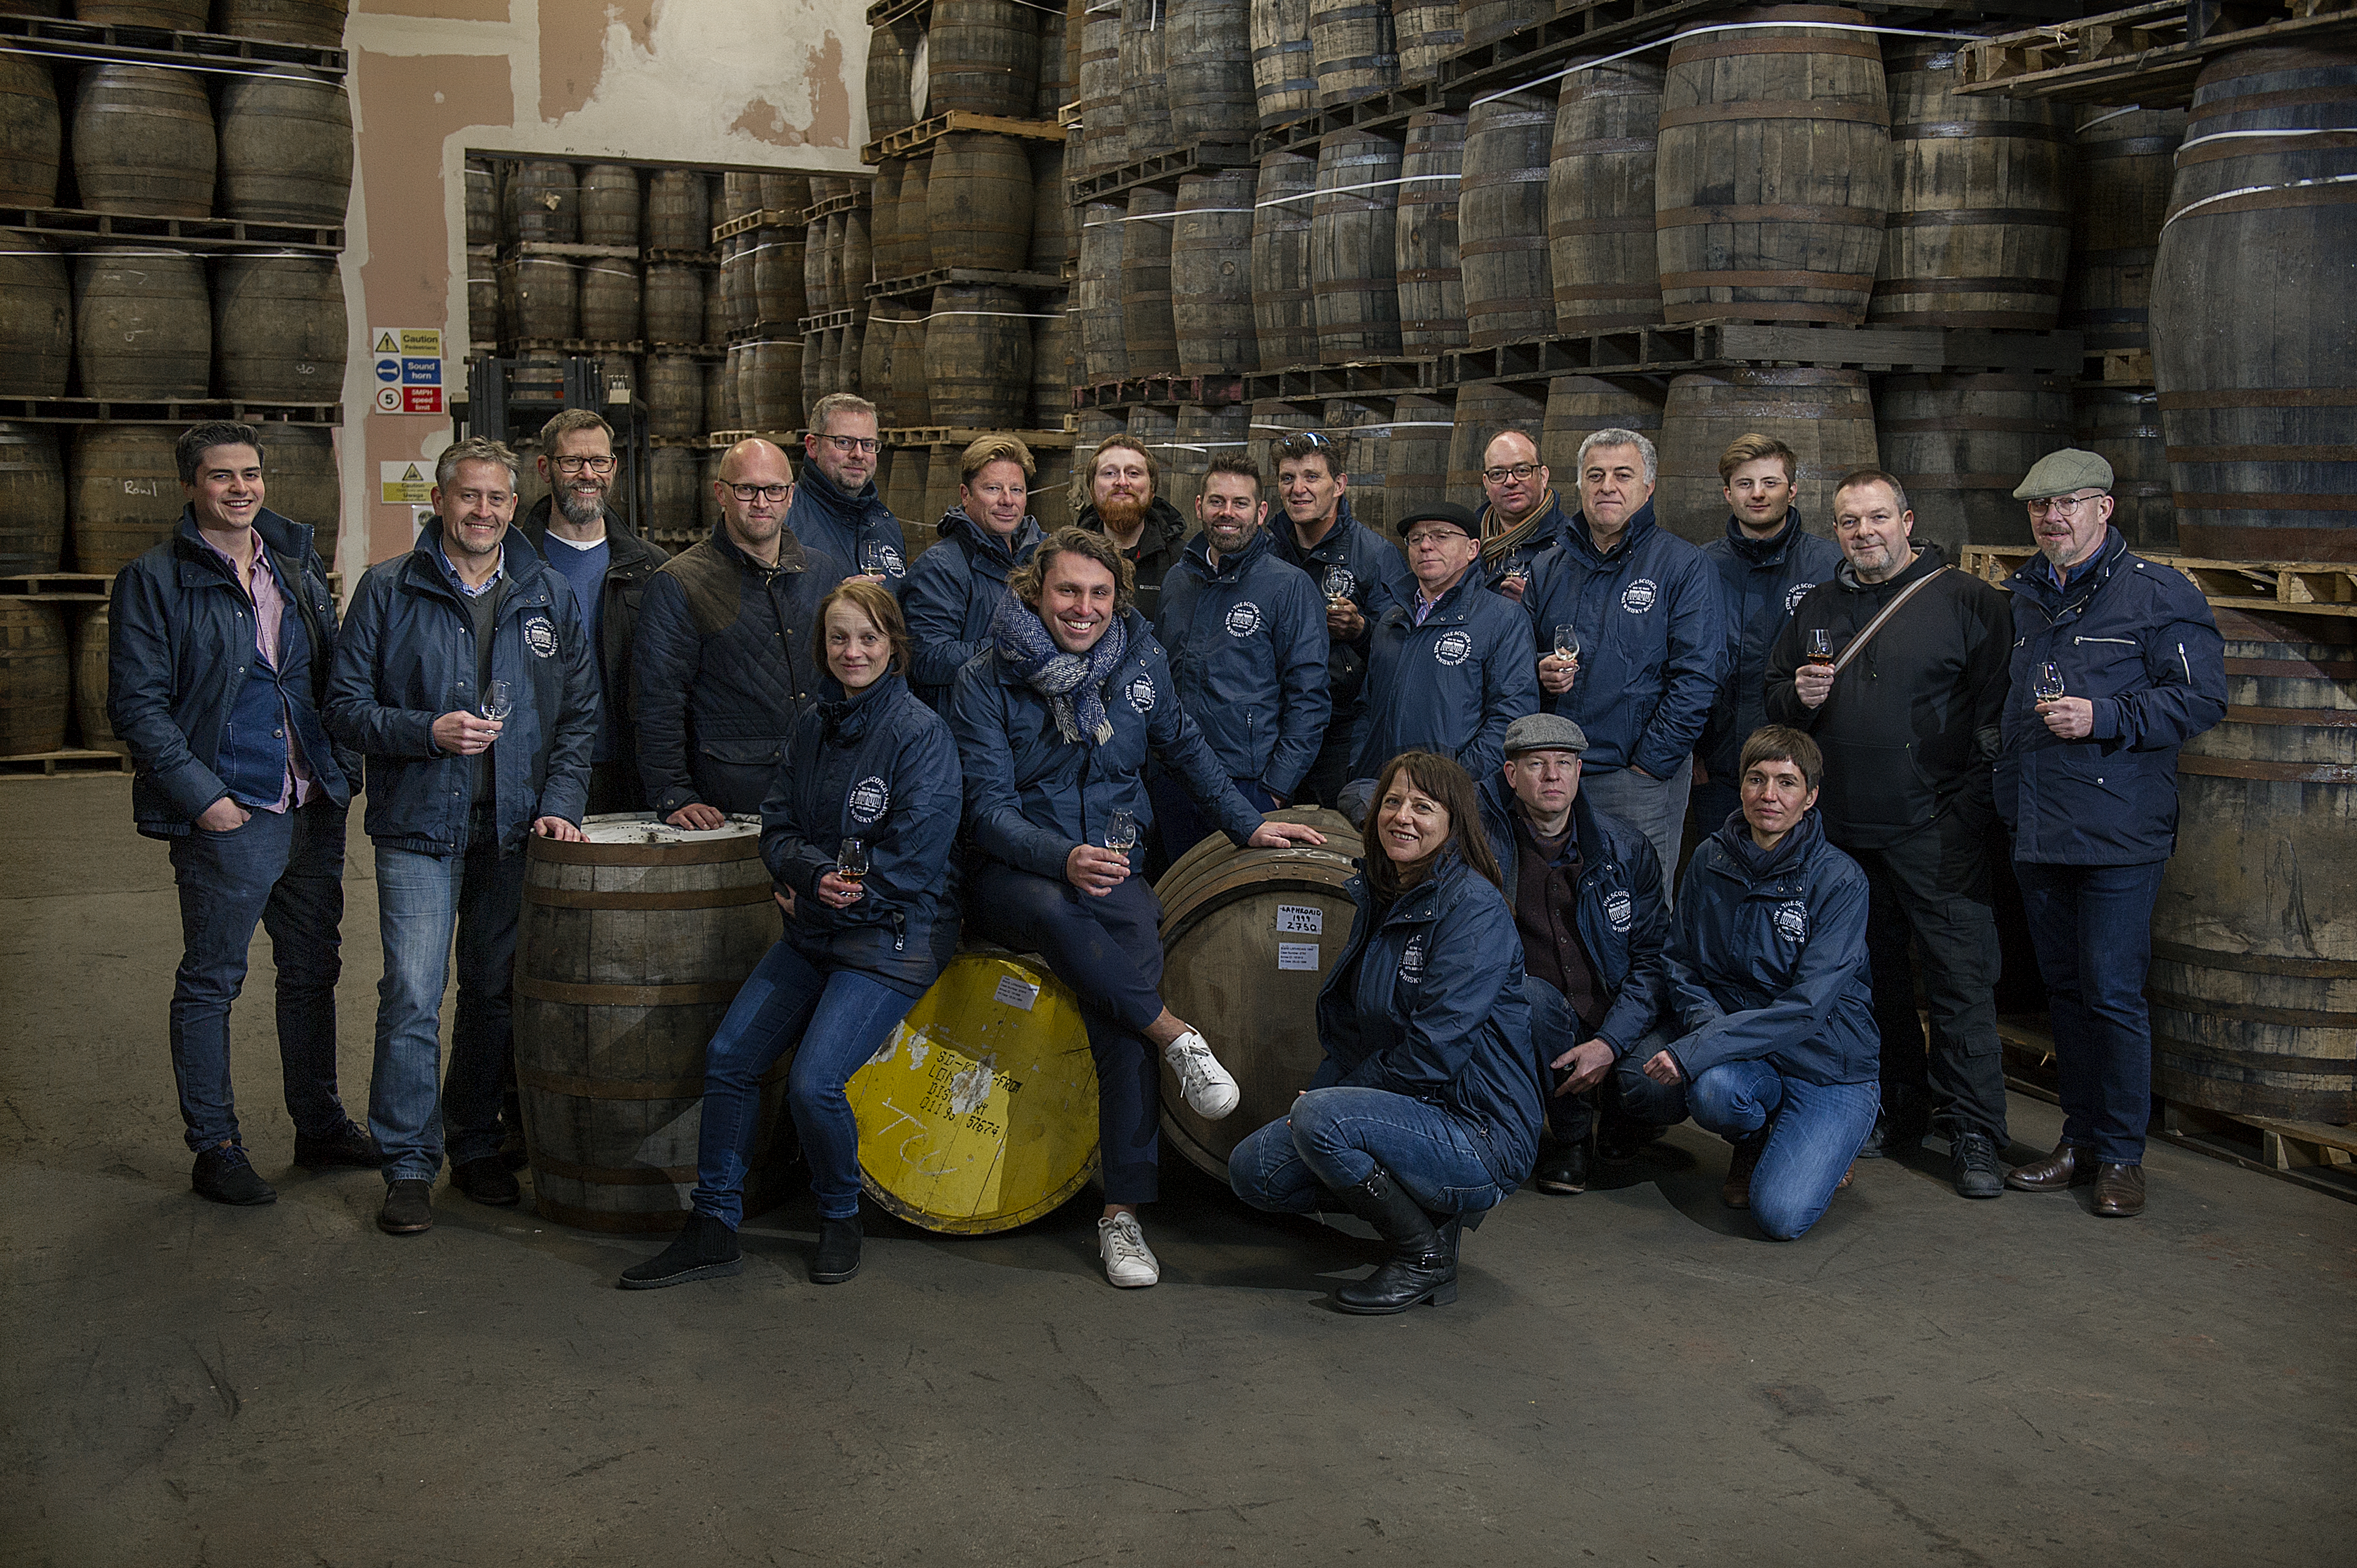 An international community of whisky lovers